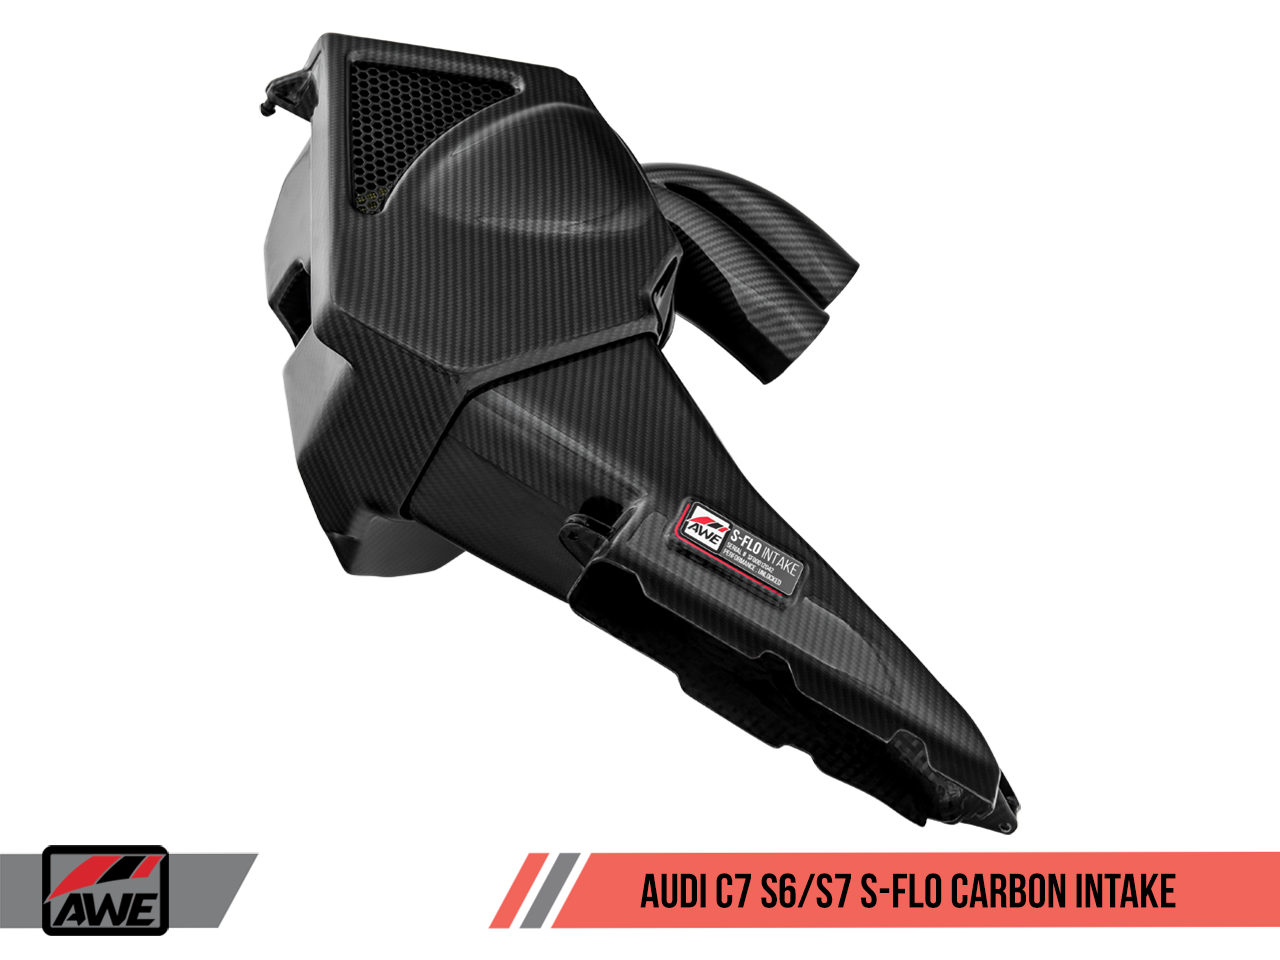 AWE S-FLO CARBON INTAKE FOR AUDI S6 / S7 4.0T